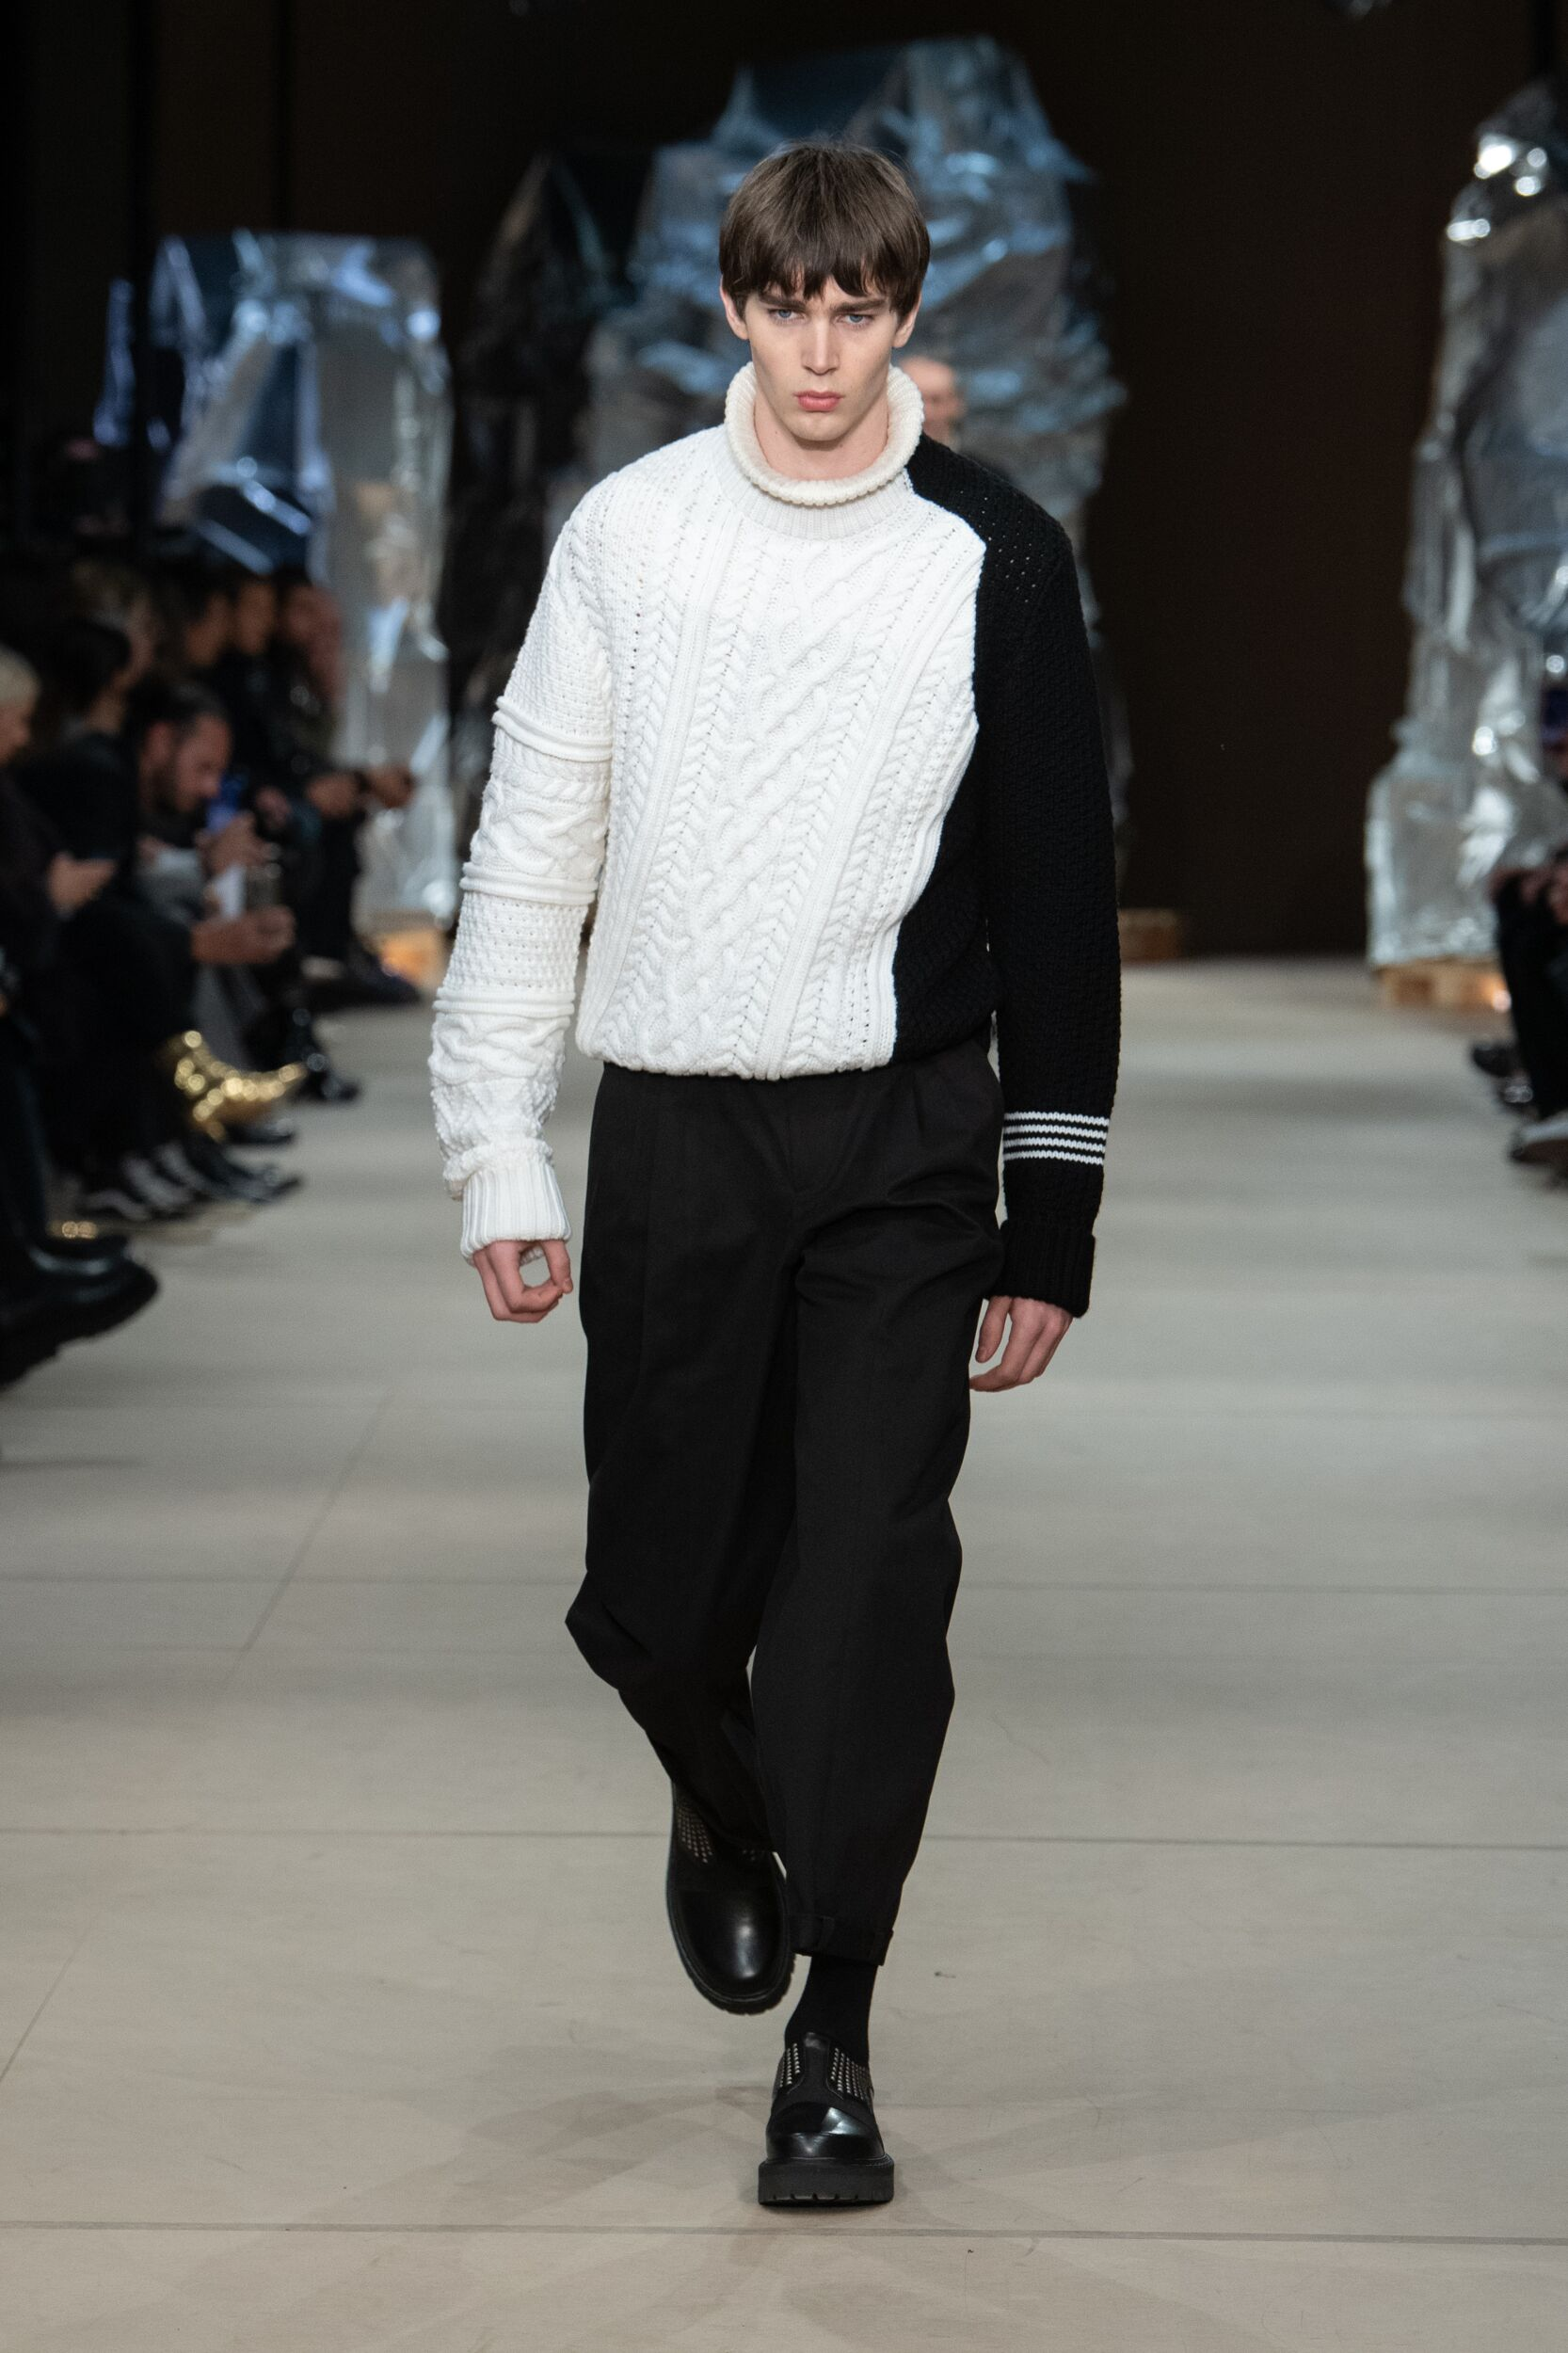 FW 2020-21 Fashion Show Neil Barrett